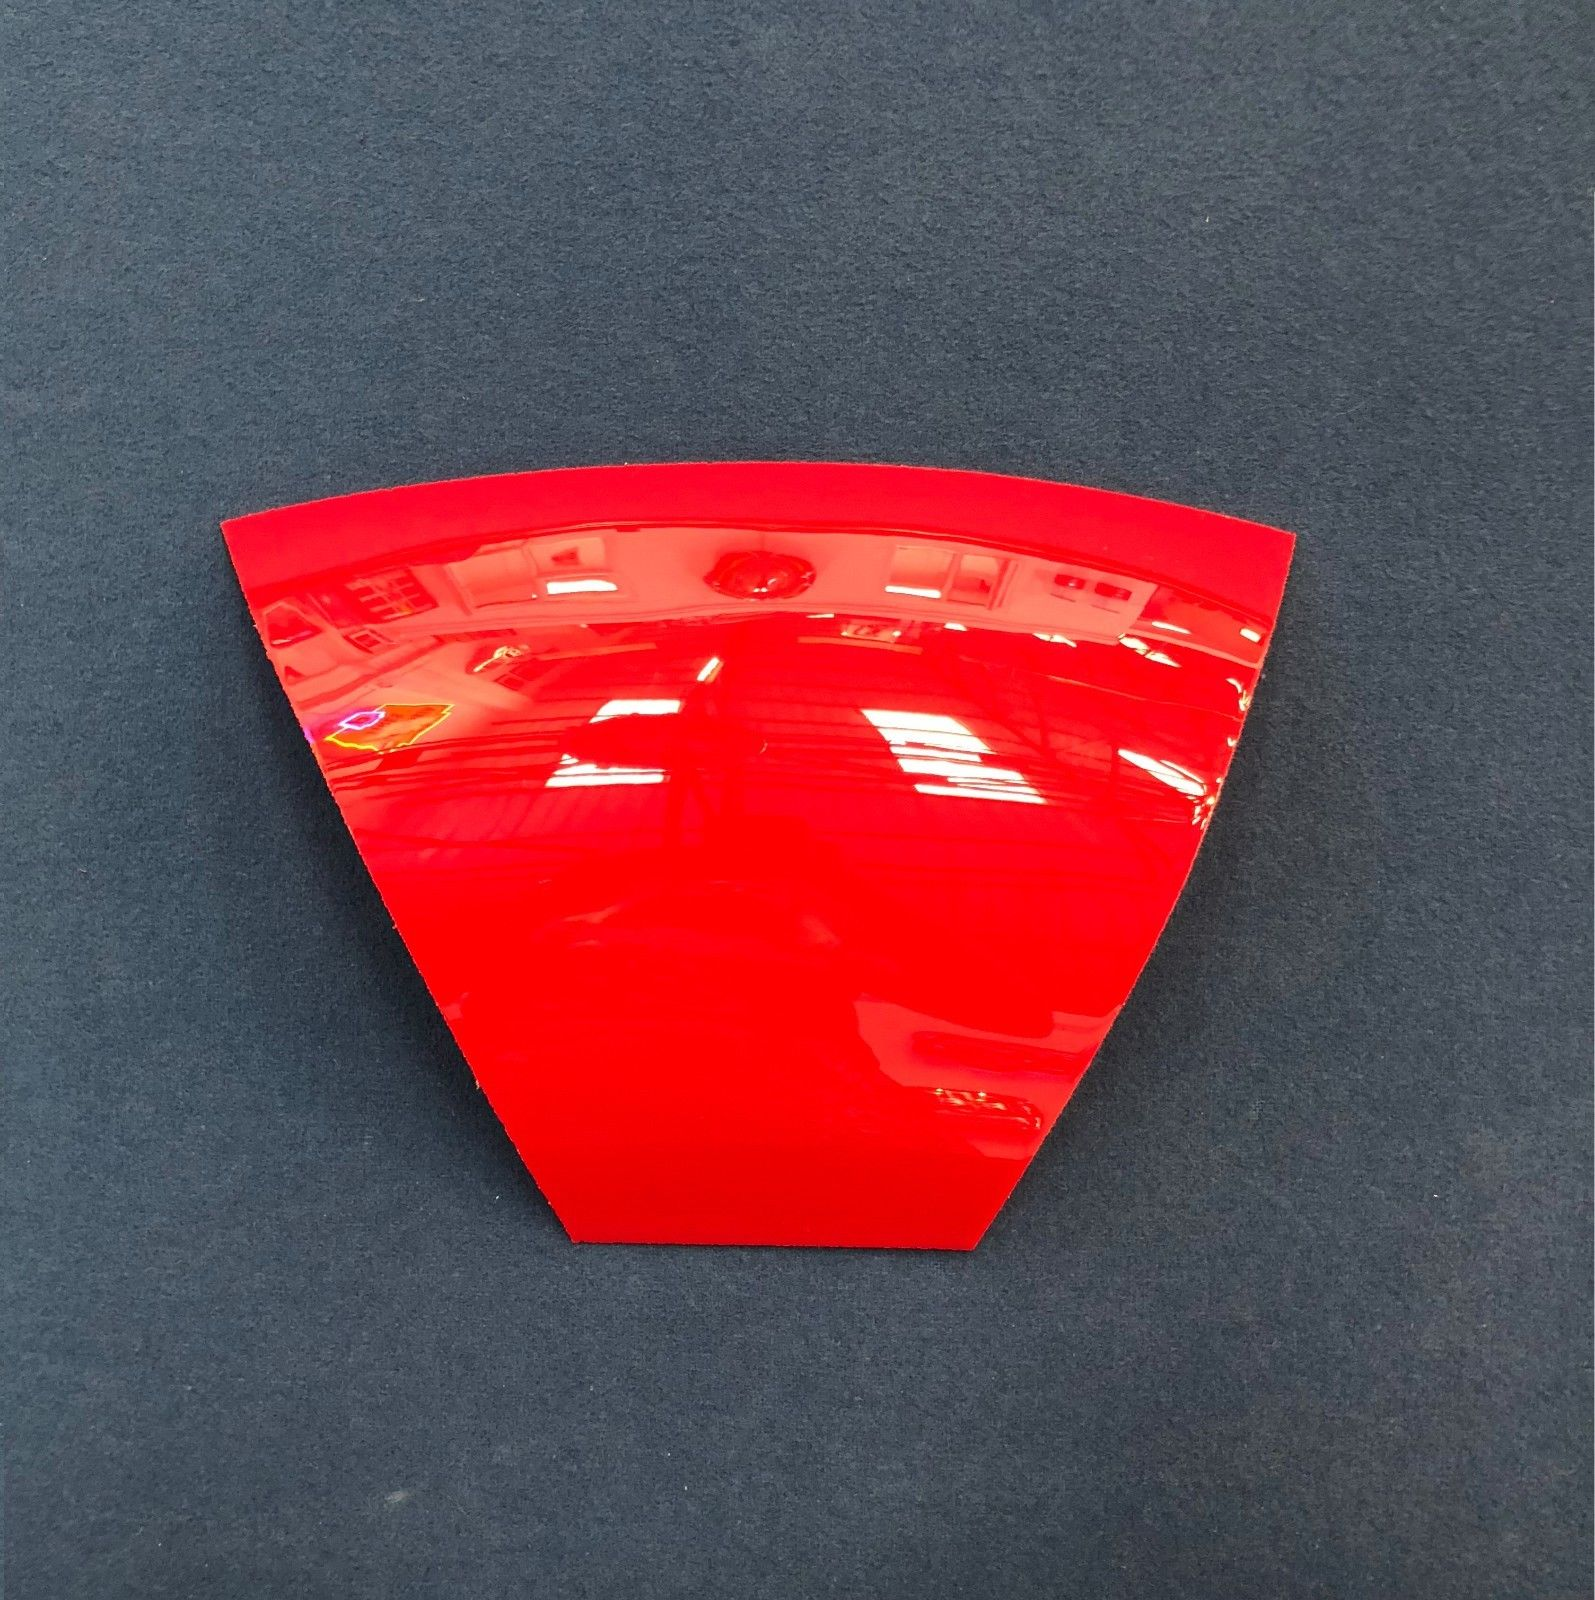 Rock-Ola Nostalgic Bubbler Top Section Red Panel